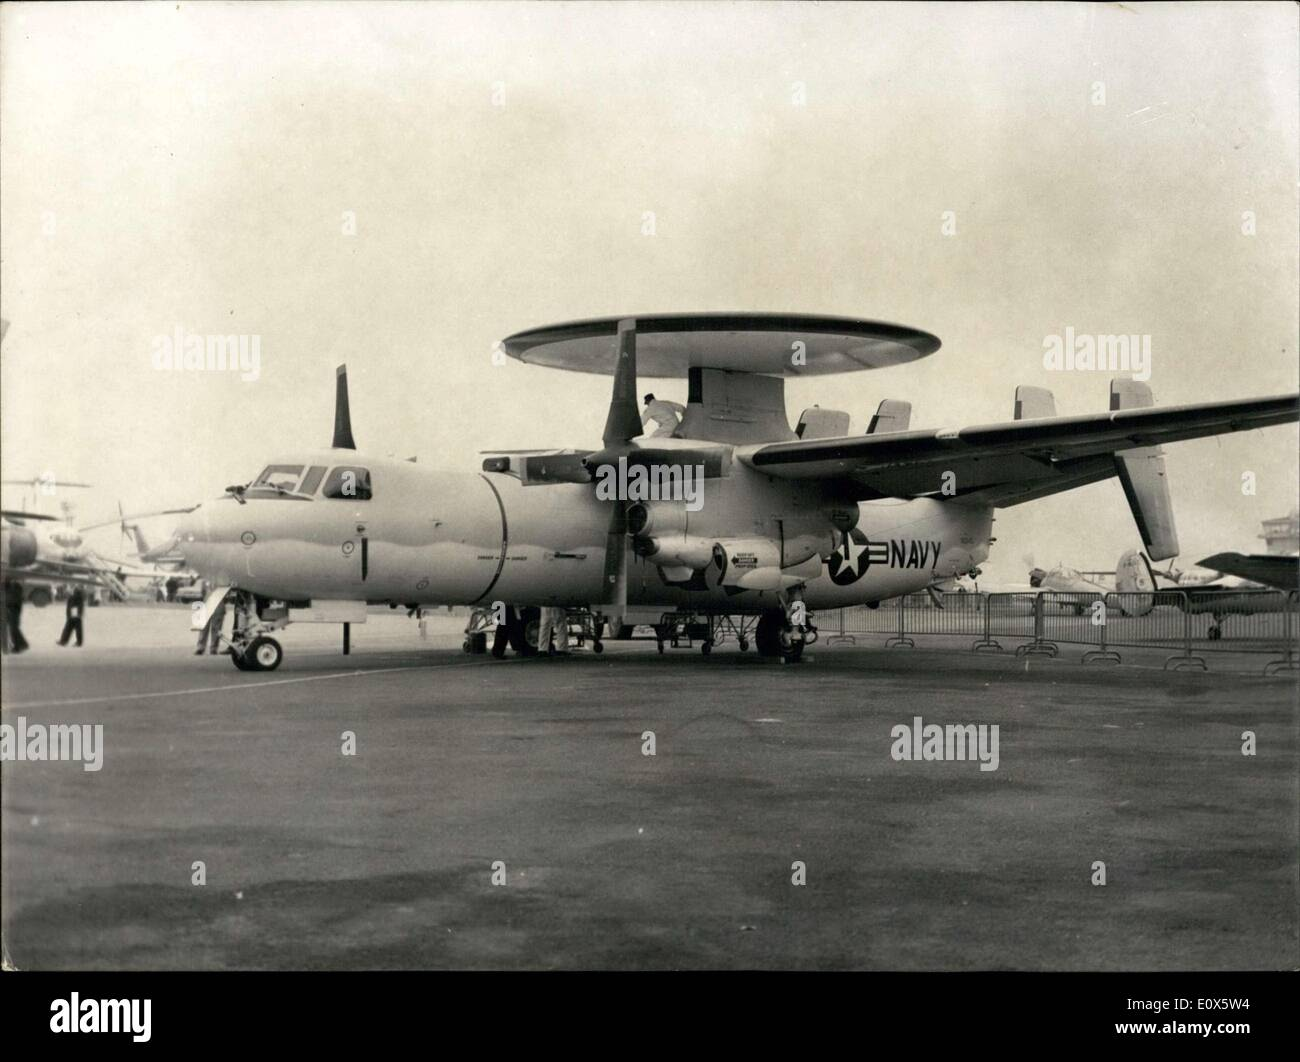 Jun. 10, 1965 - The ''Hawkeye'' E-2A at the Aeronautic and Space Show in Bourget - Stock Image